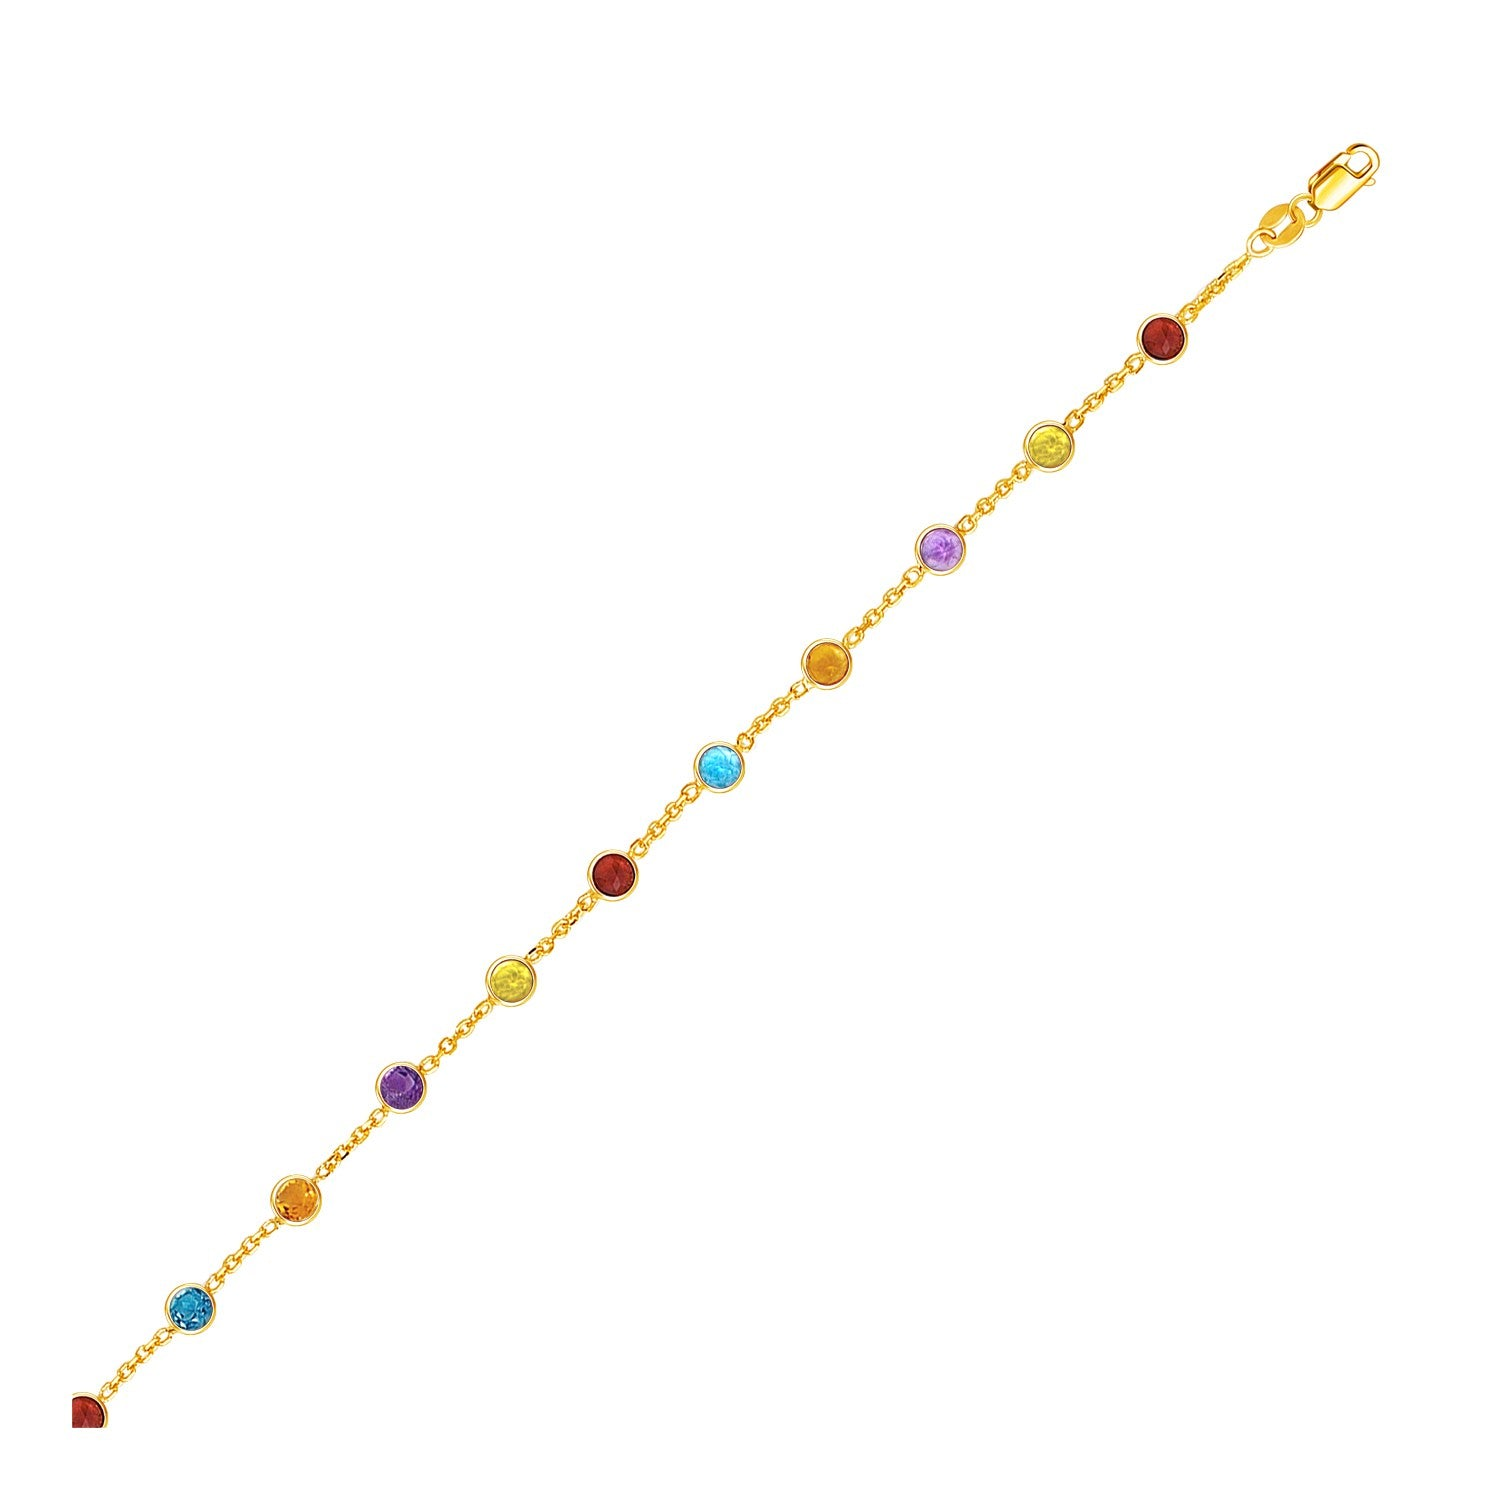 14K Yellow Gold Cable Anklet with Round Multi Tone Stations - Uniquepedia.com